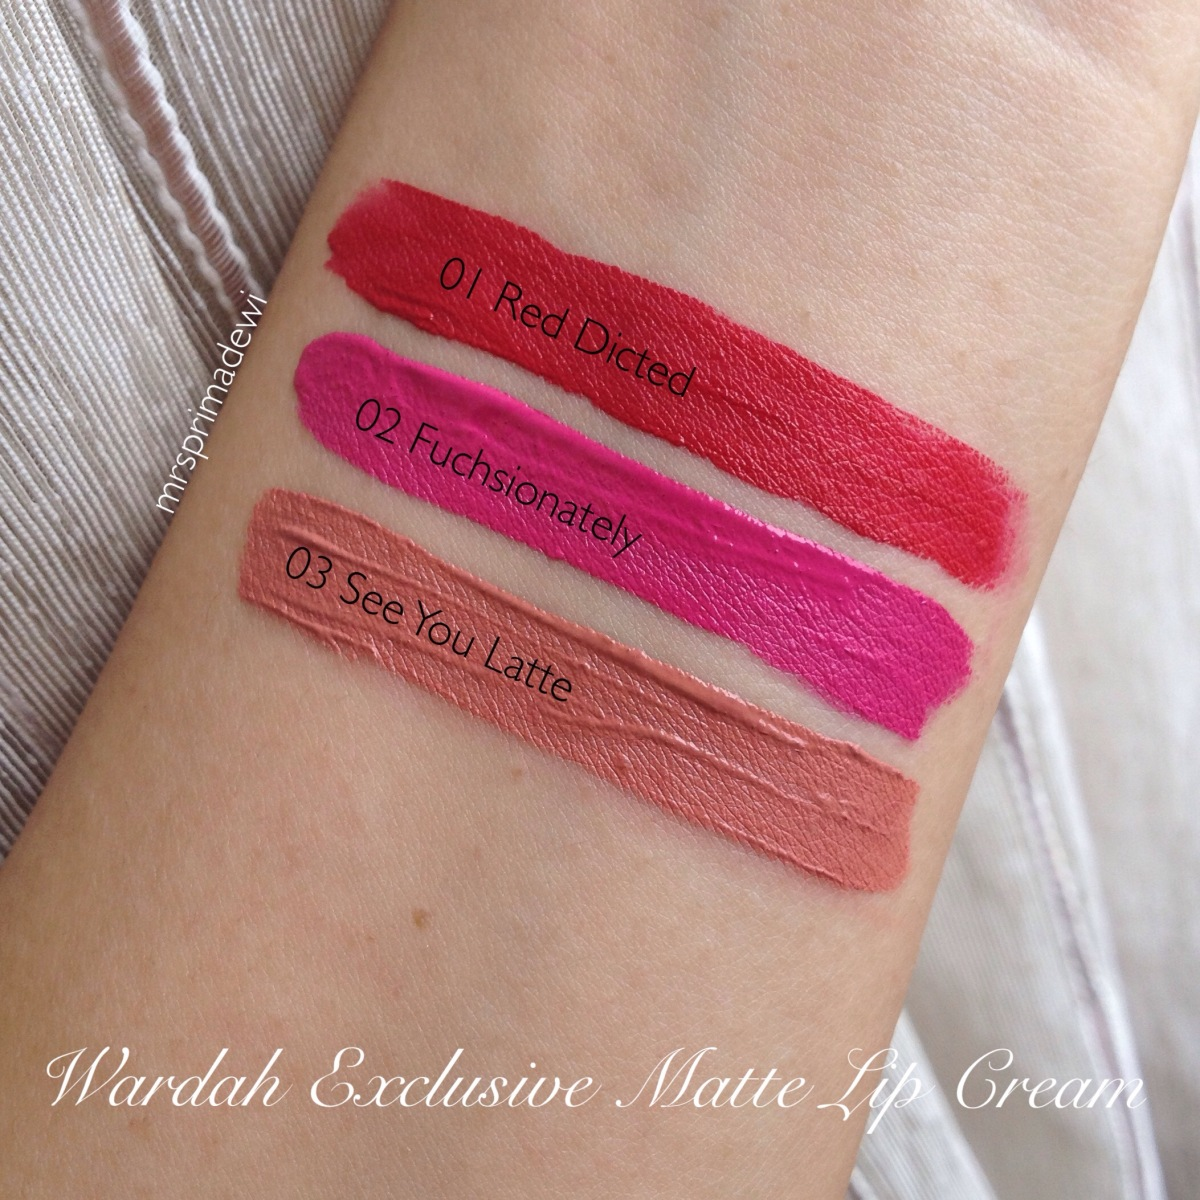 Wardah Exclusive Matte Lip Cream 01,02,03 : Swatch